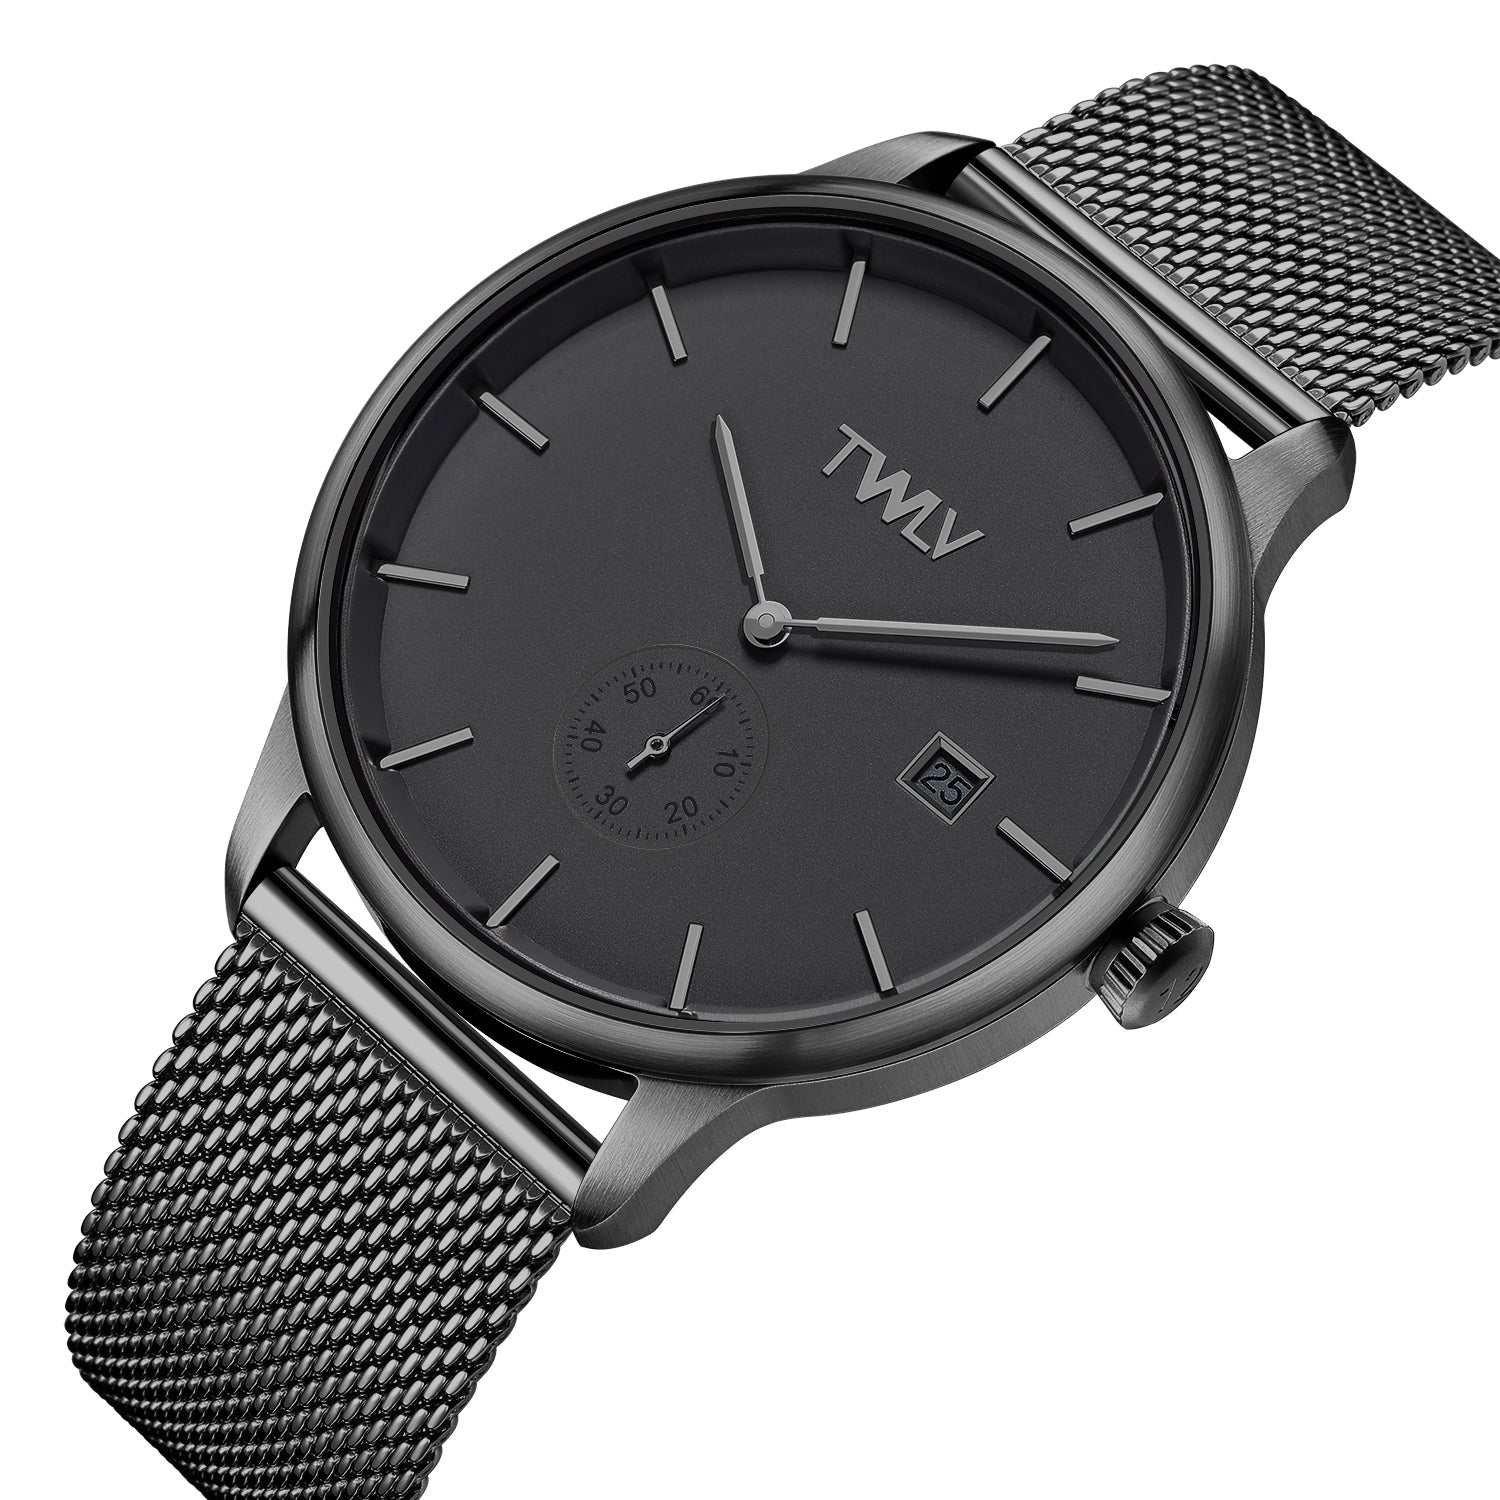 TW4207 Mr. Jones Gun Metal Mesh Watch